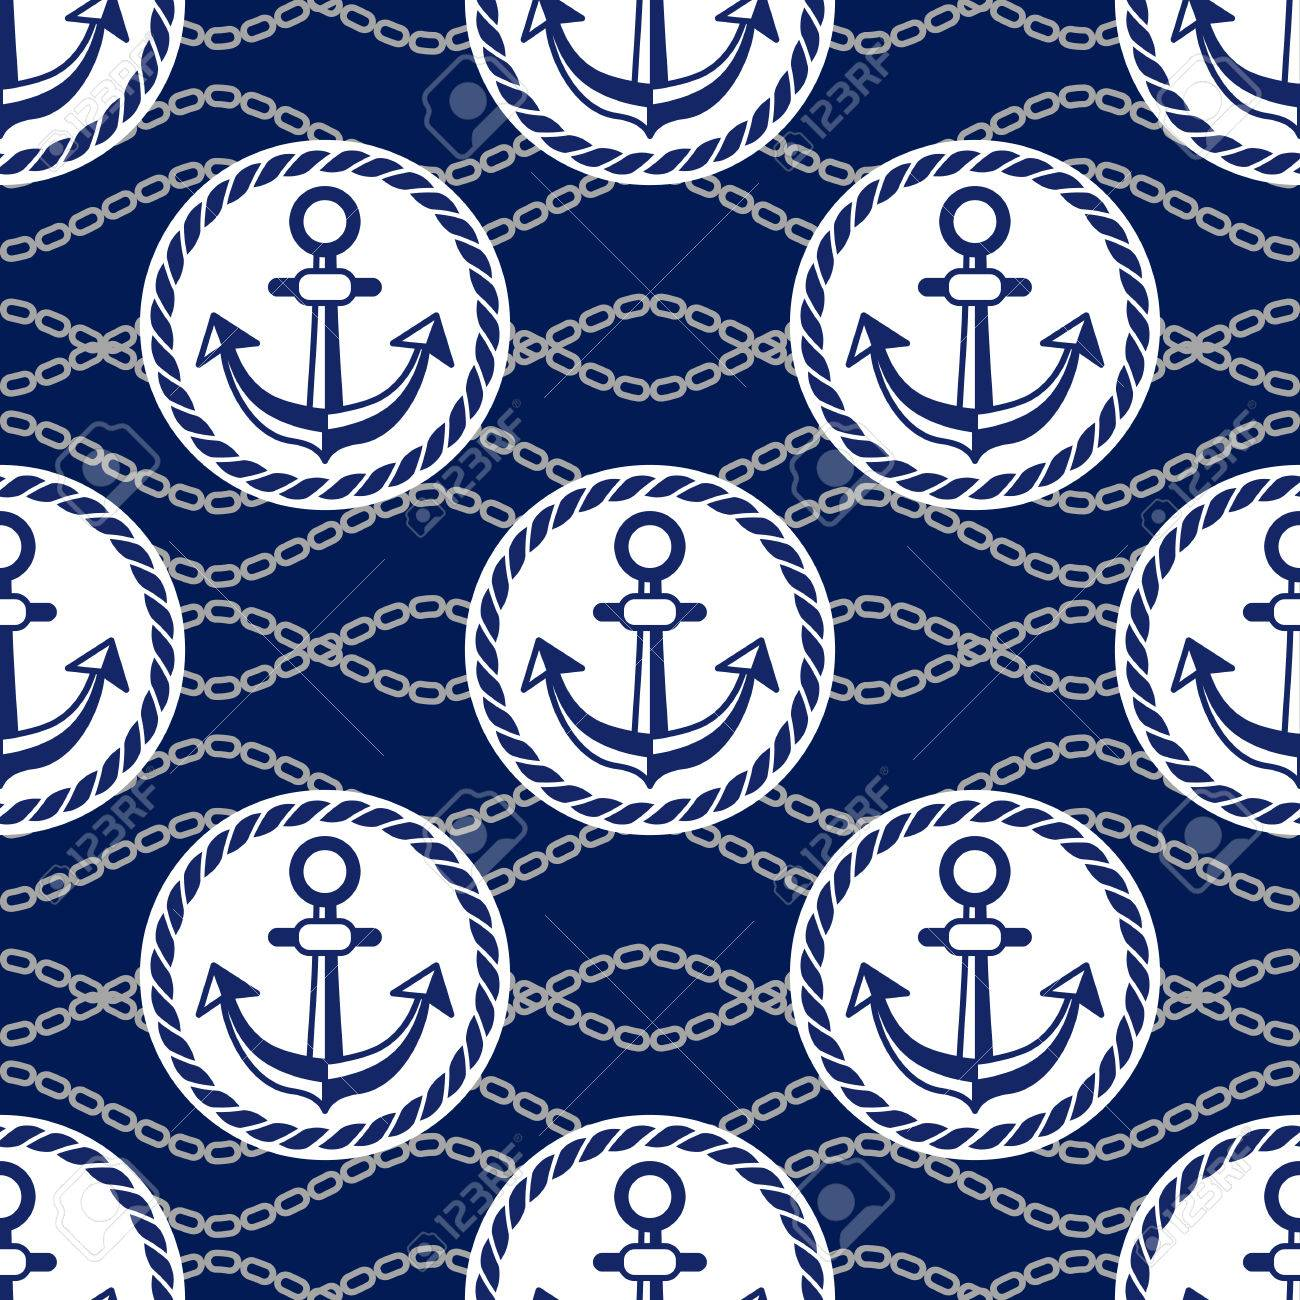 A Seamless Pattern With Anchors Design Ongoing Backgrounds For 1300x1300